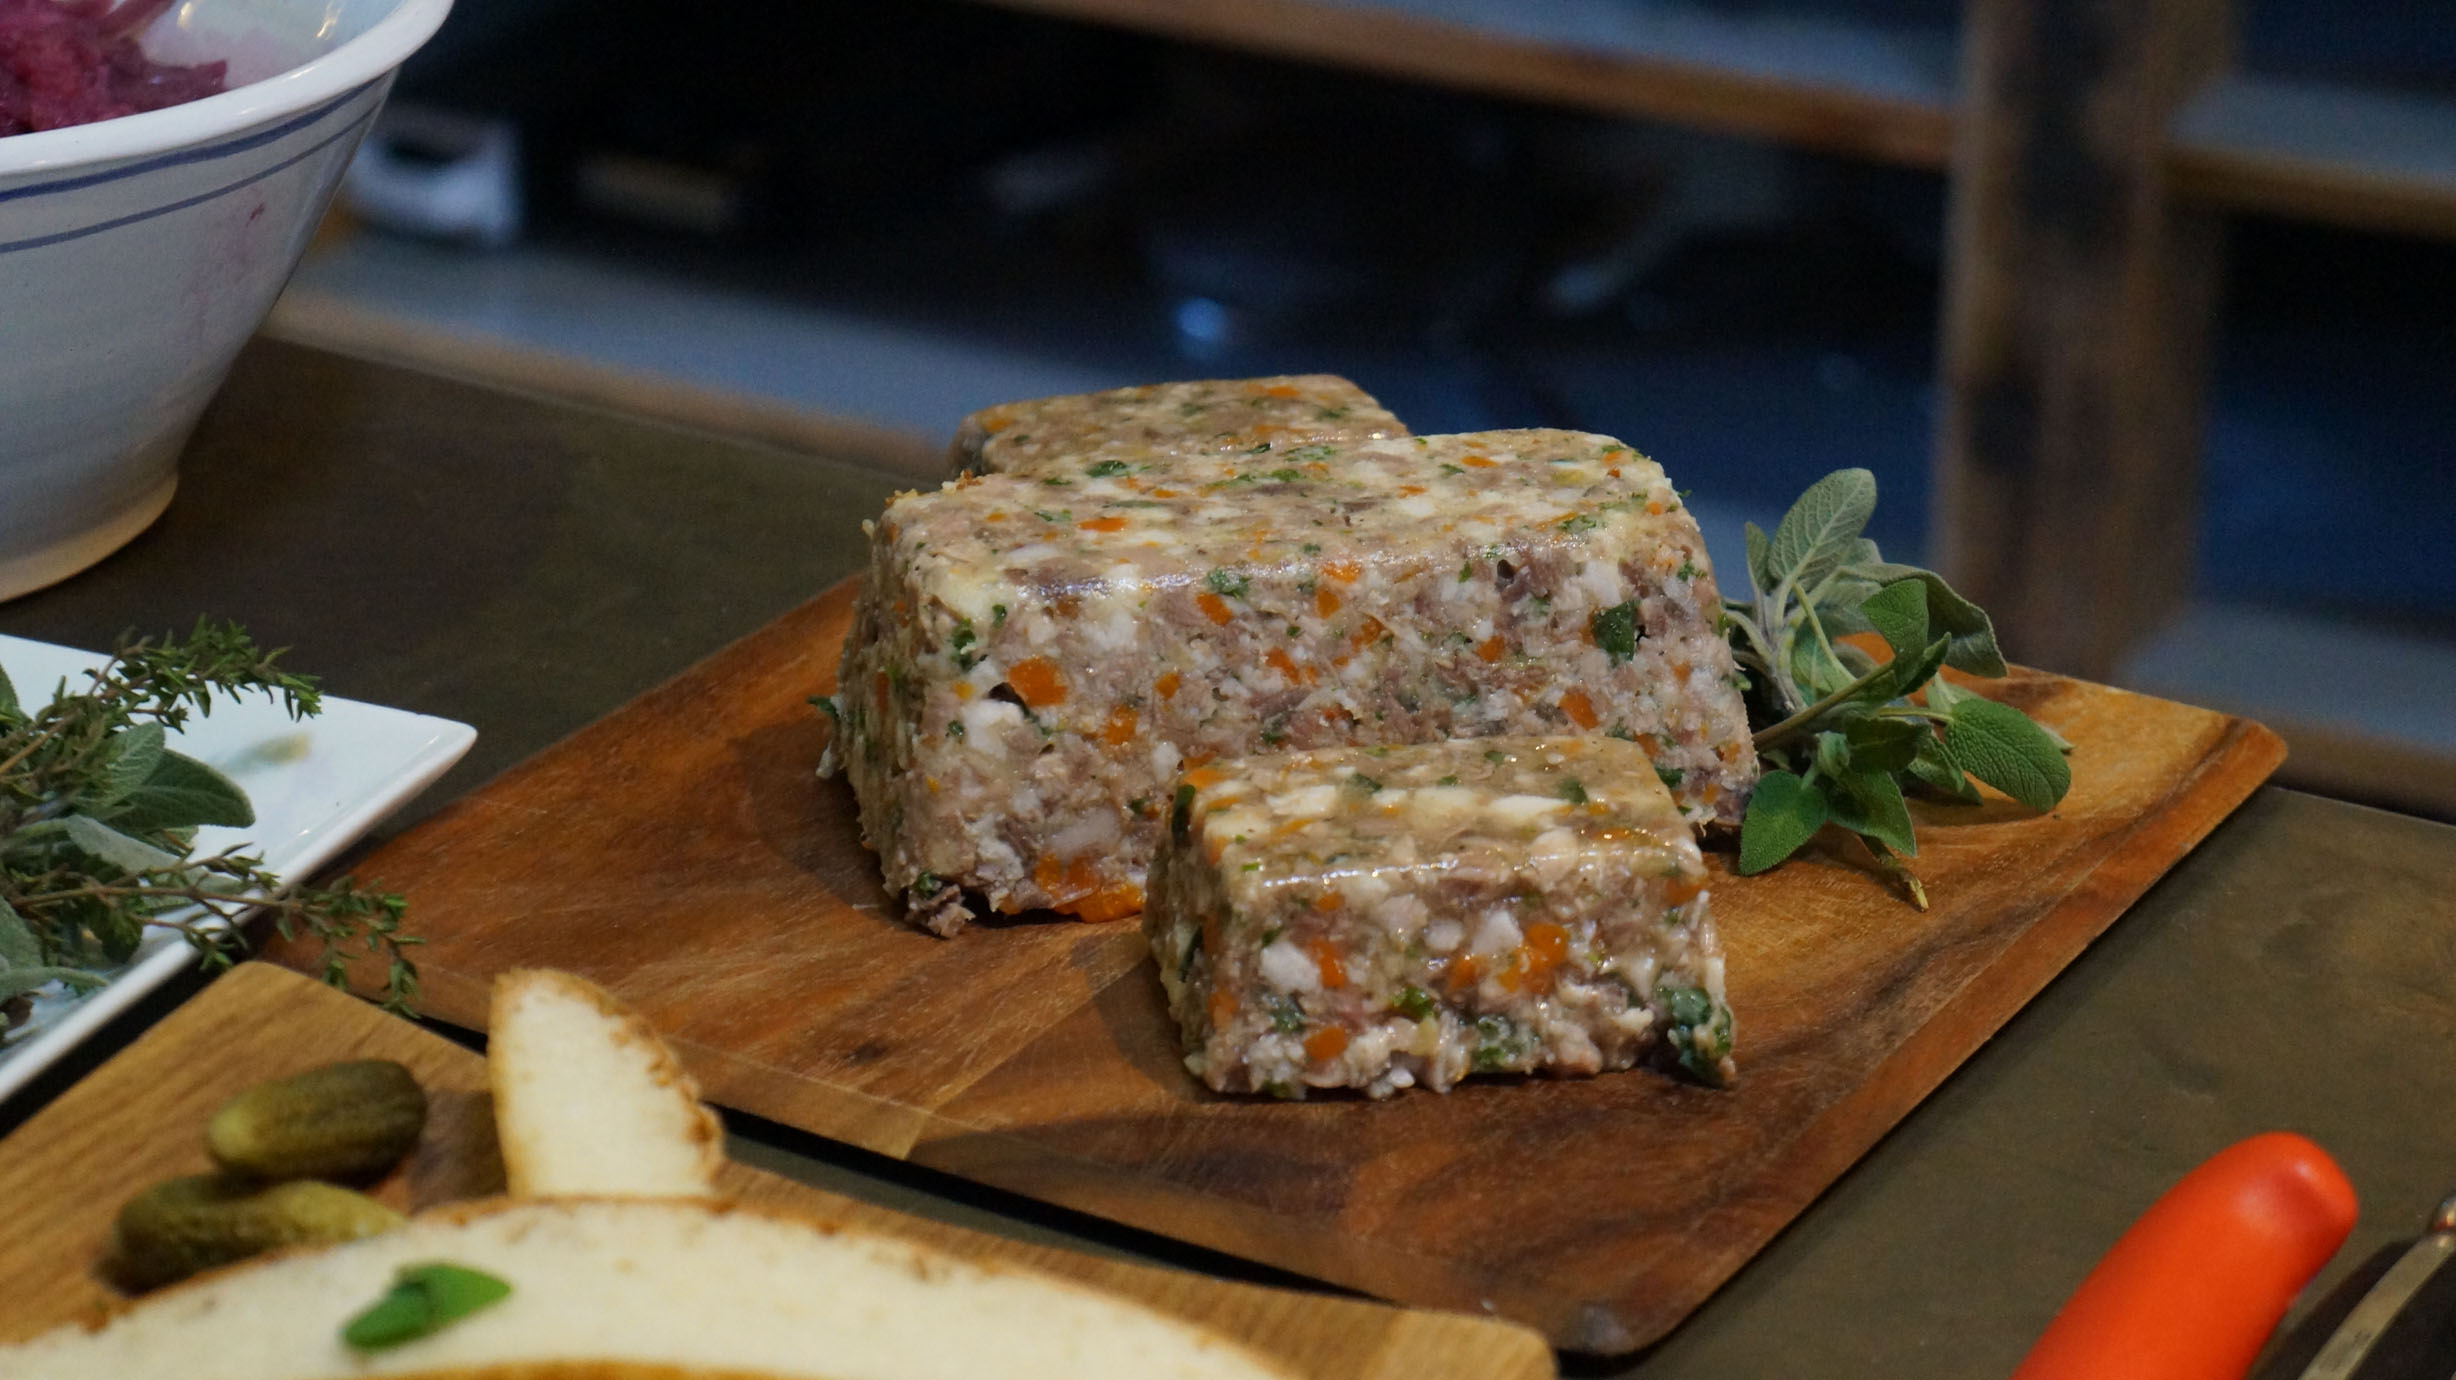 Head Cheese Terrine